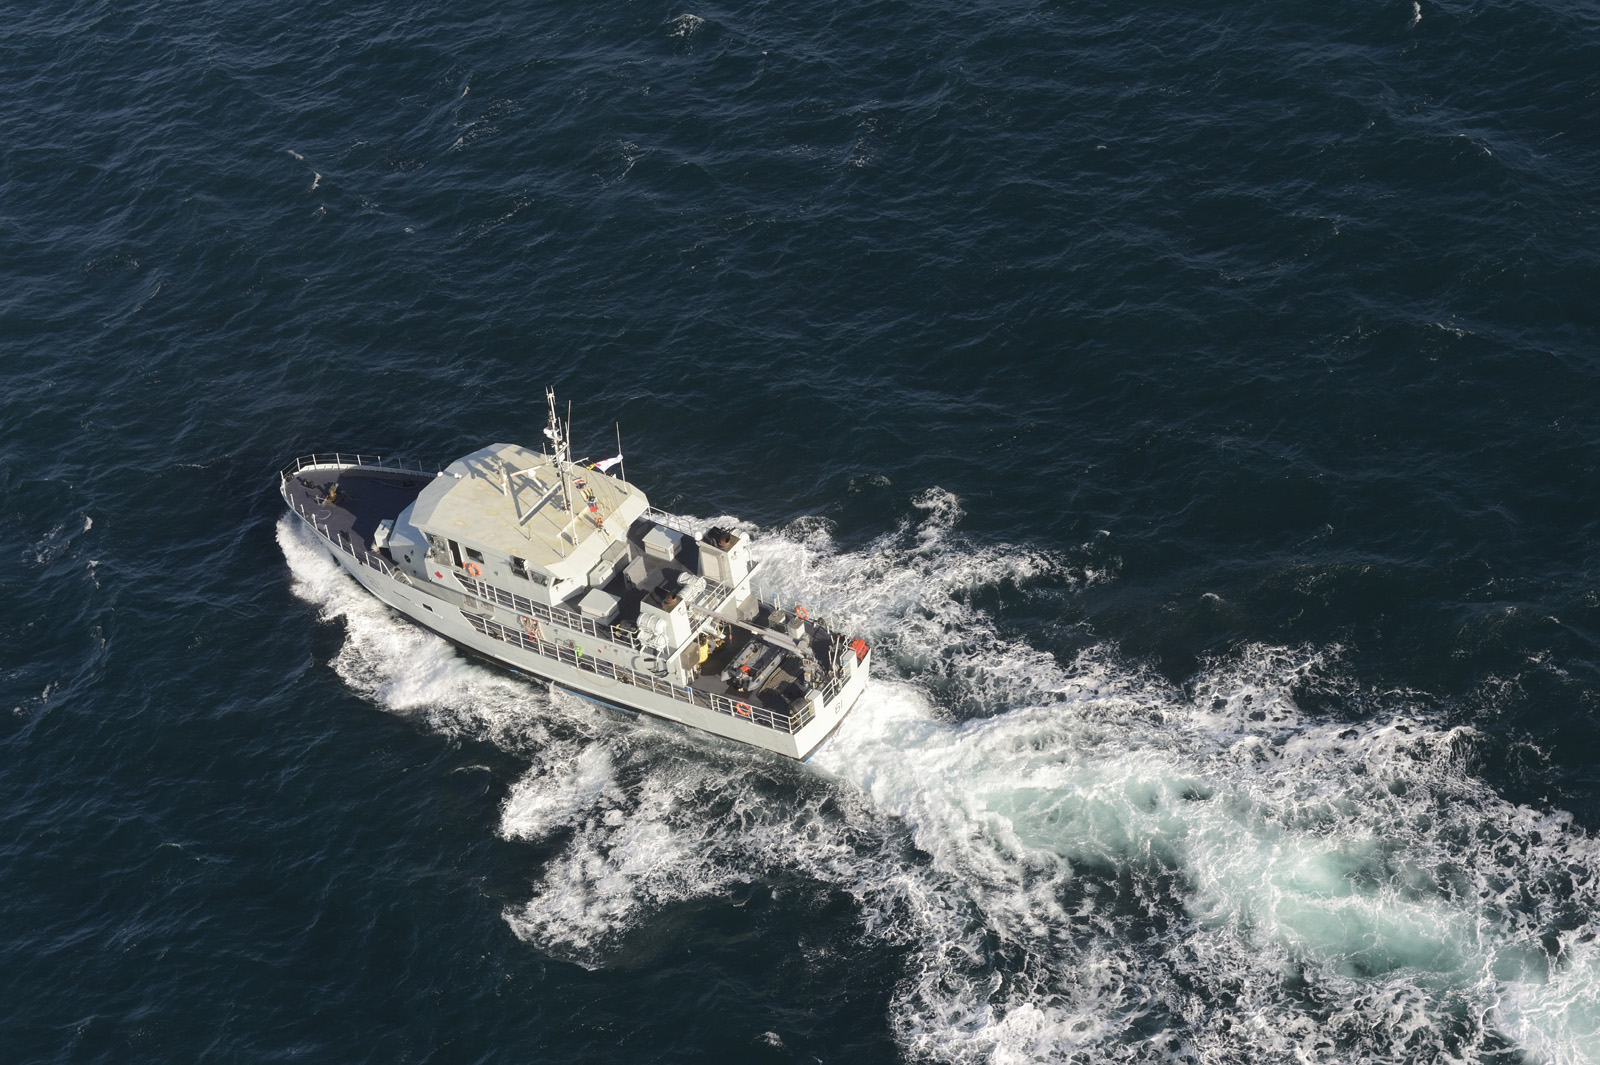 The Patrol Craft Training (PCT) Cougar sails in the in the Straight of Juan de Fuca during a PCT formation exercise on 14 February 2014.